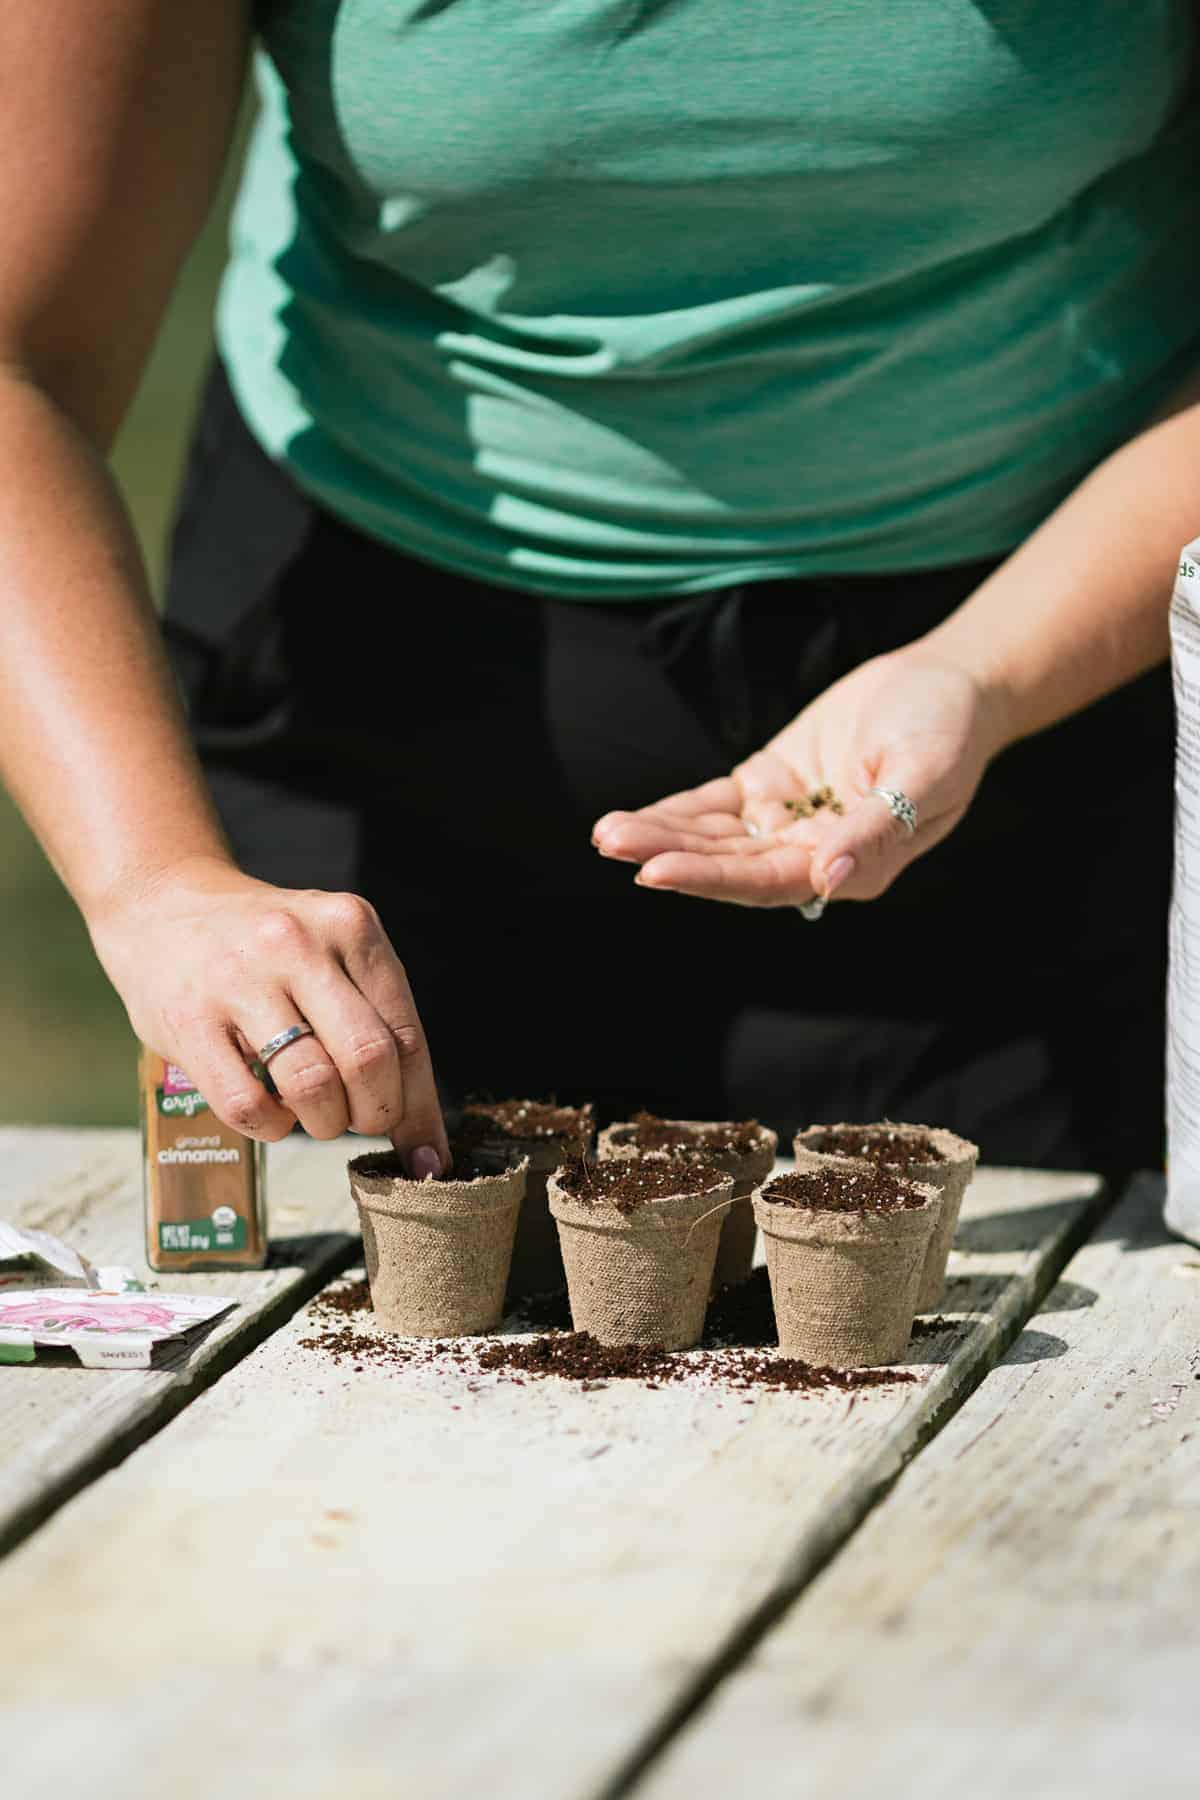 How to start seeds indoors: A woman plants seeds in peat pots.